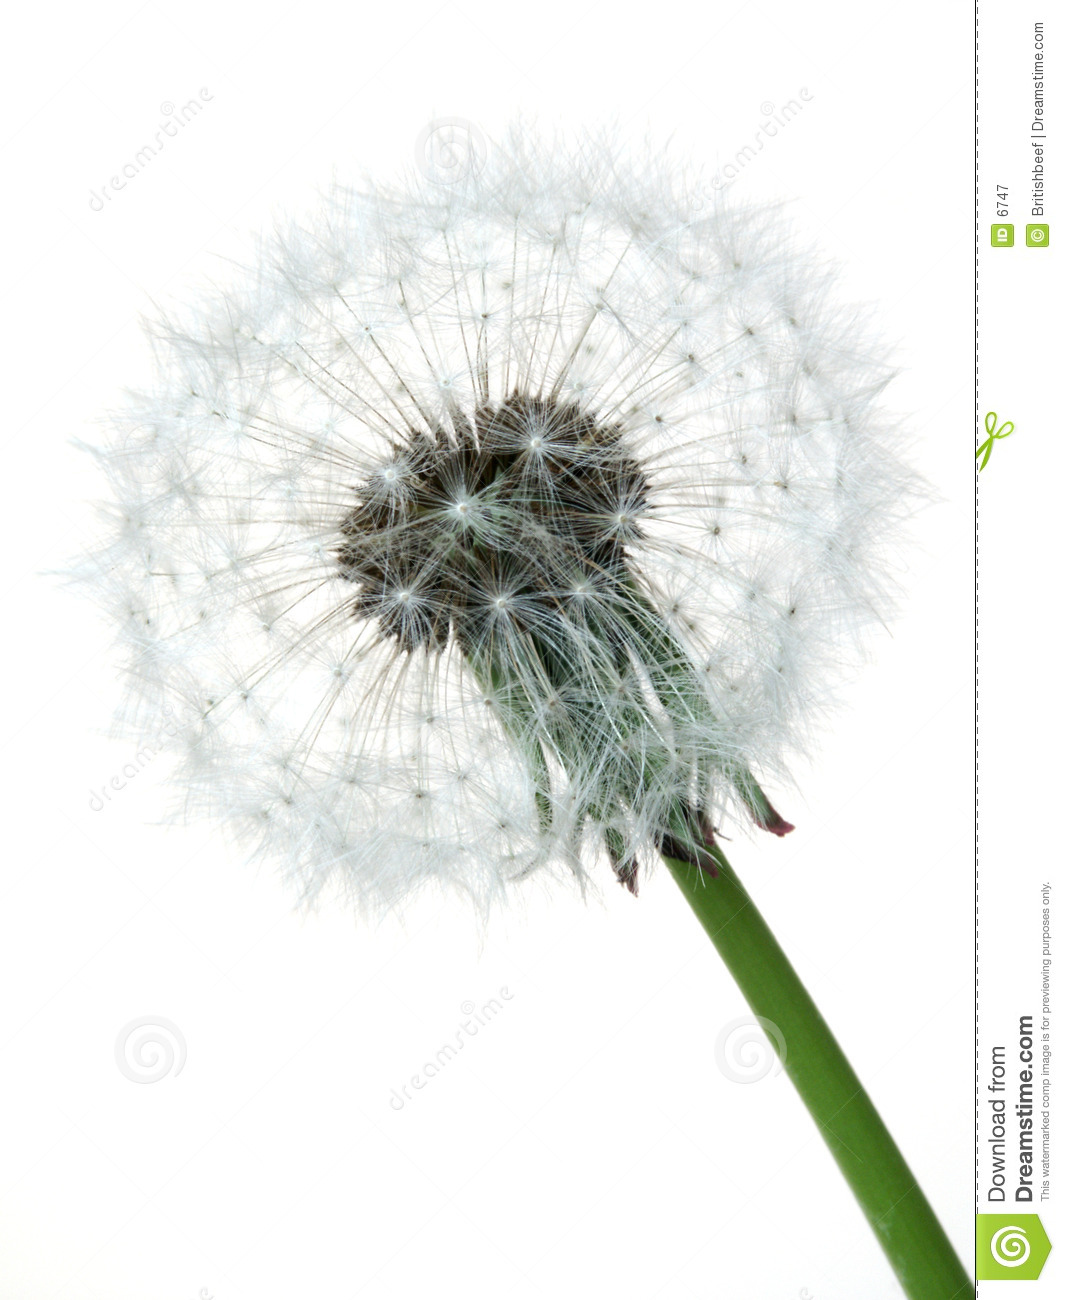 Dandelion Royalty Free Stock Photography - Image: 6747